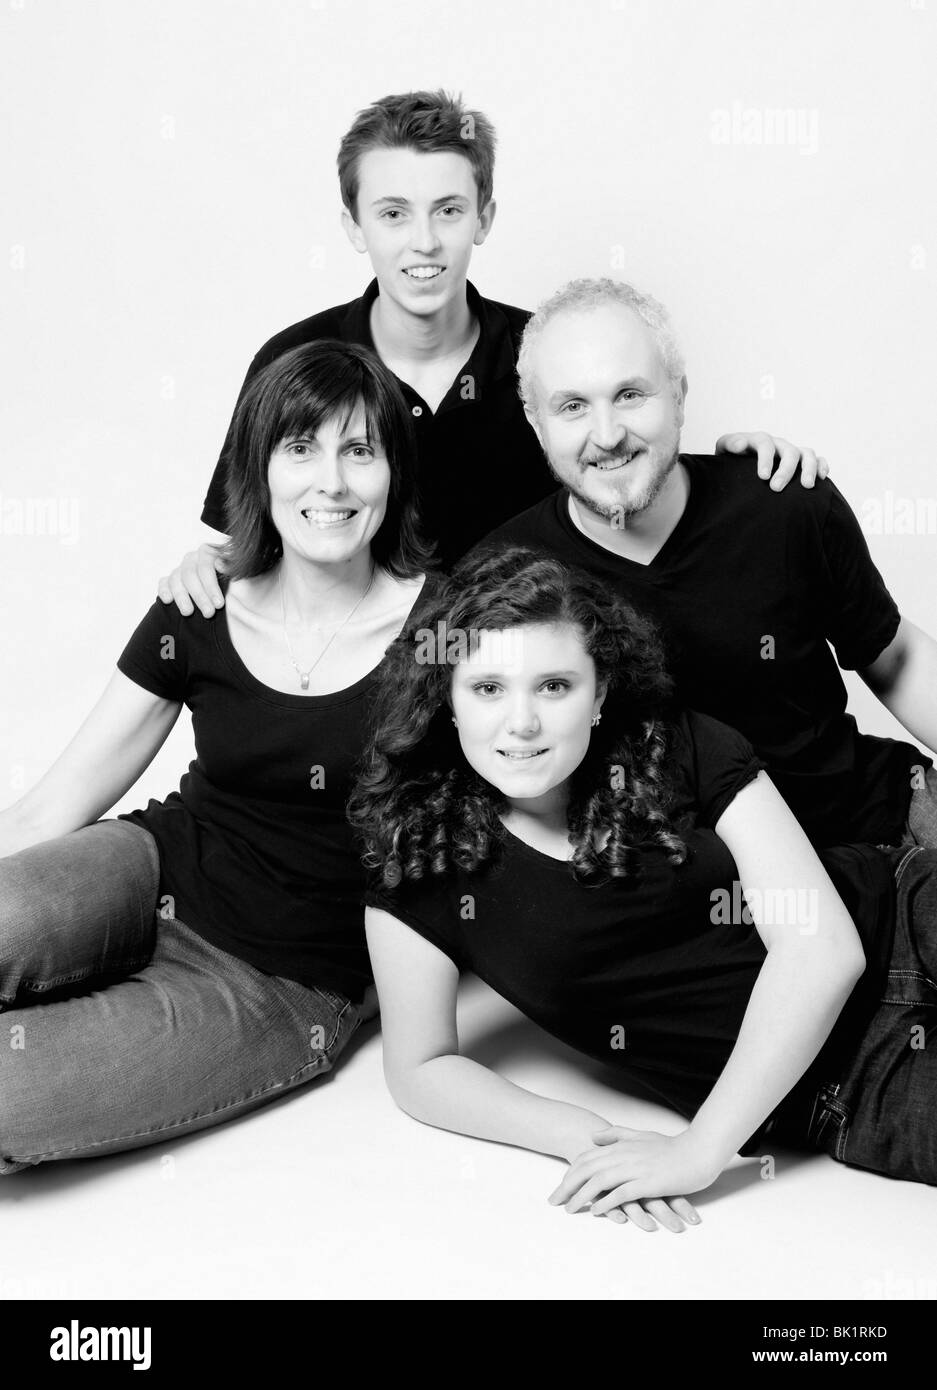 Studio family portrait of mum dad son daughter shot on white background